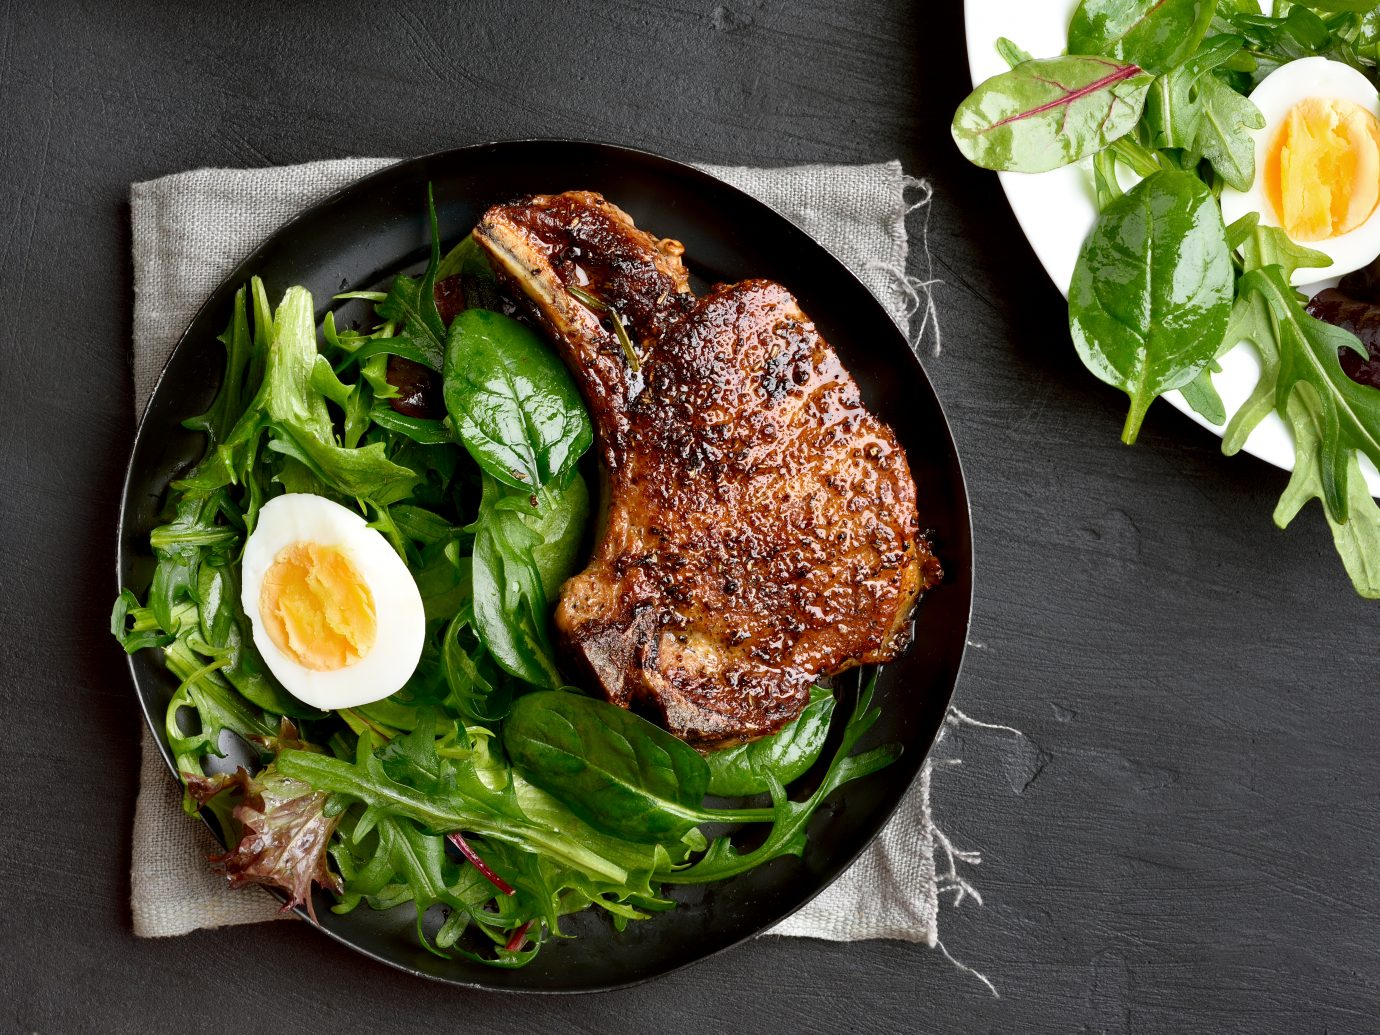 Grilled pork steak with green salad. Top view, flat lay